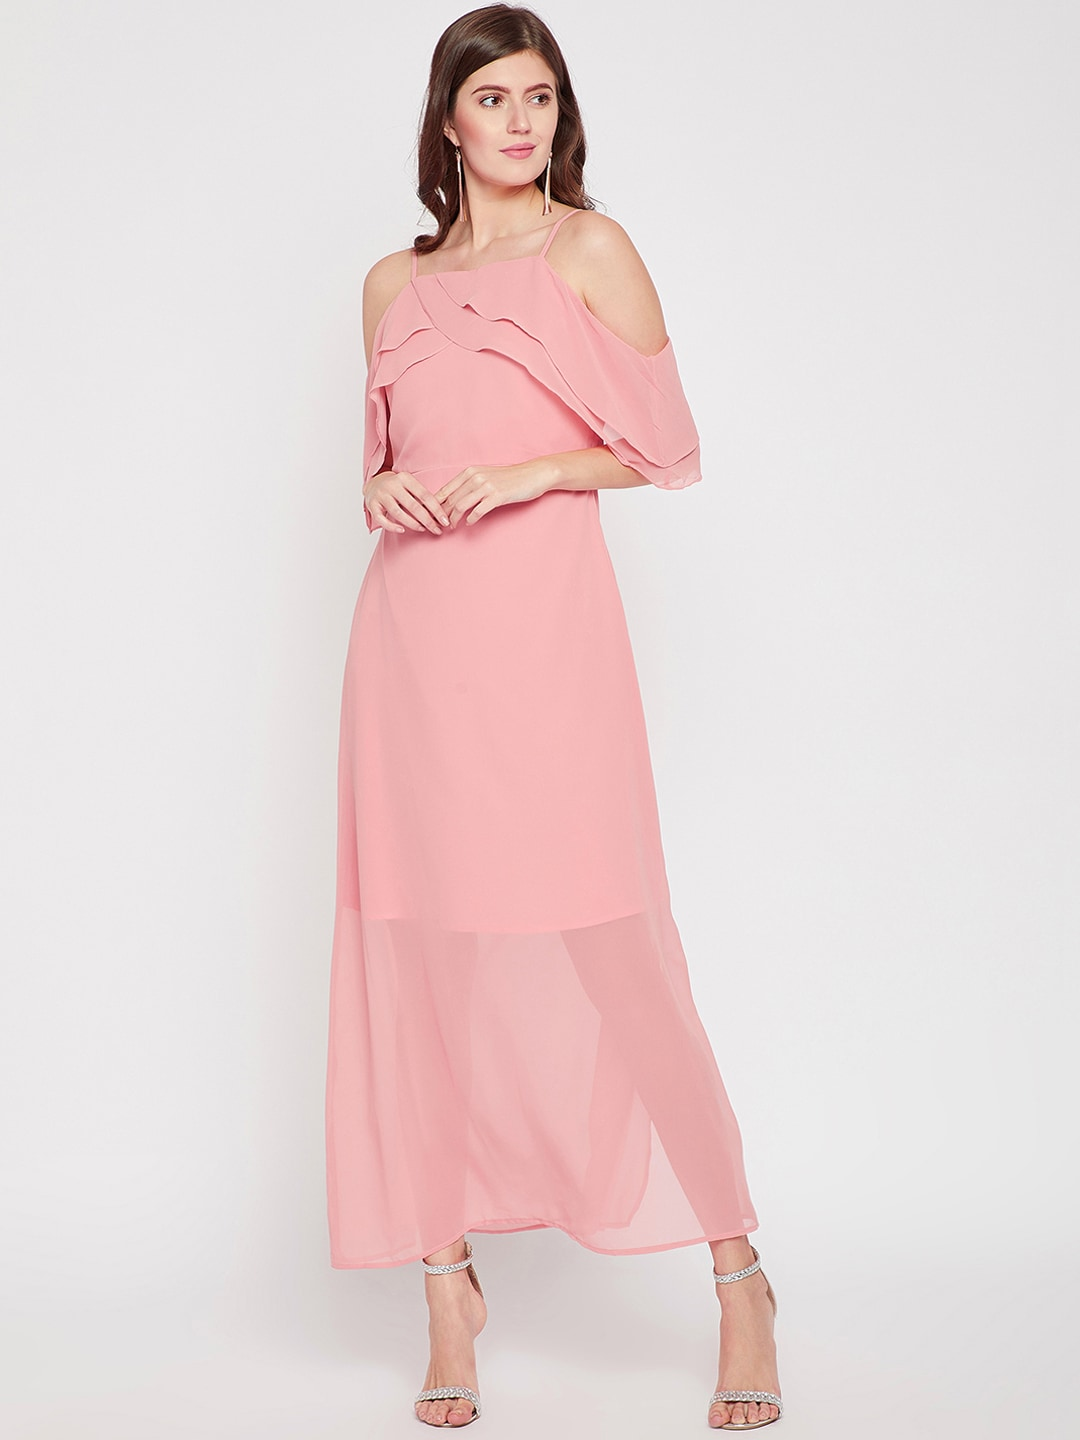 Women Pink Apparel - Buy Women Pink Apparel online in India 344849e38